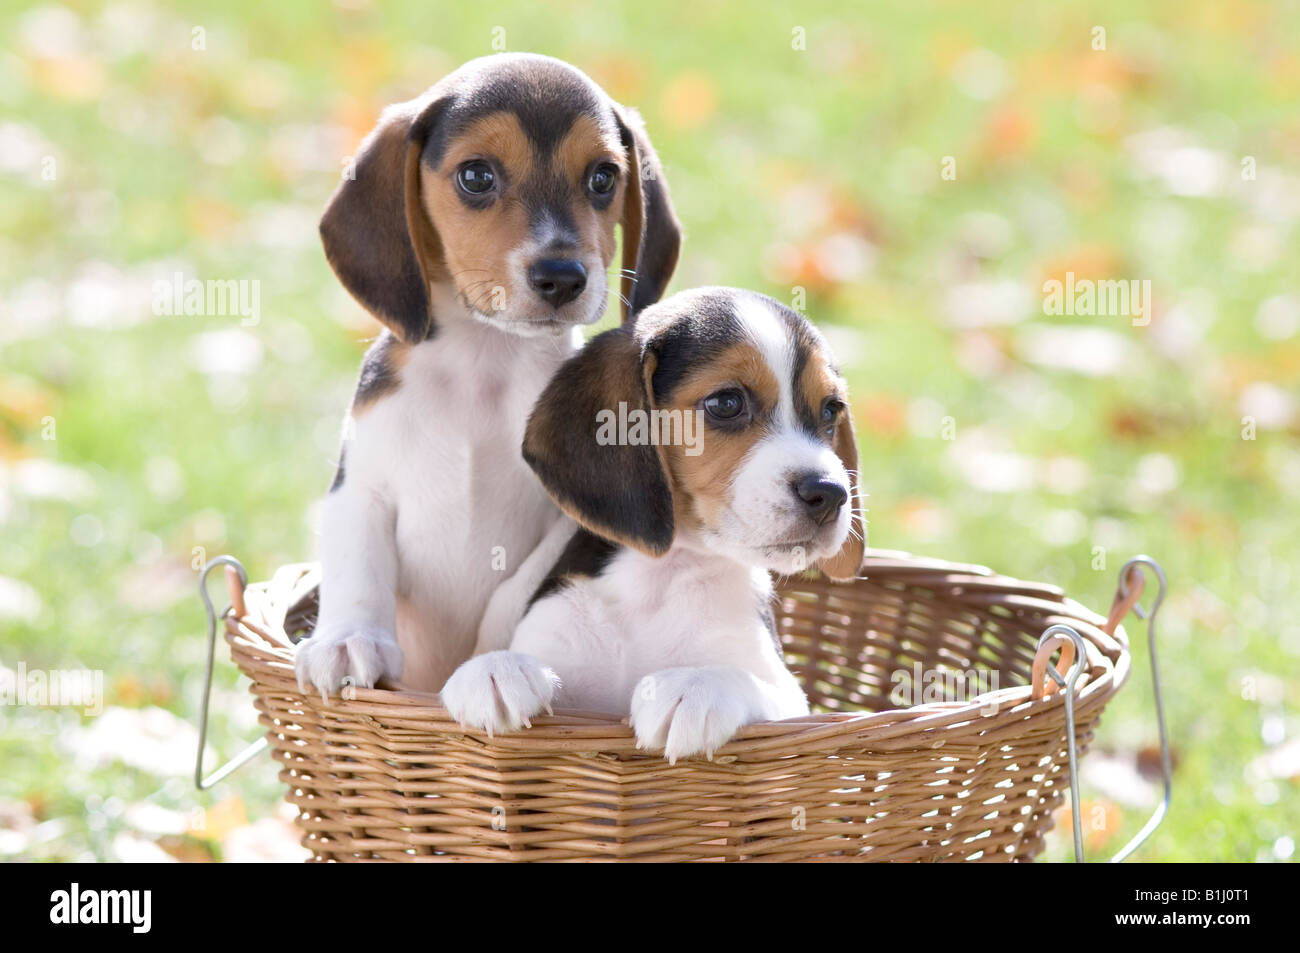 Best Two Beagle Adorable Dog - two-beagle-puppies-in-a-wicker-basket-B1J0T1  2018_383466  .jpg